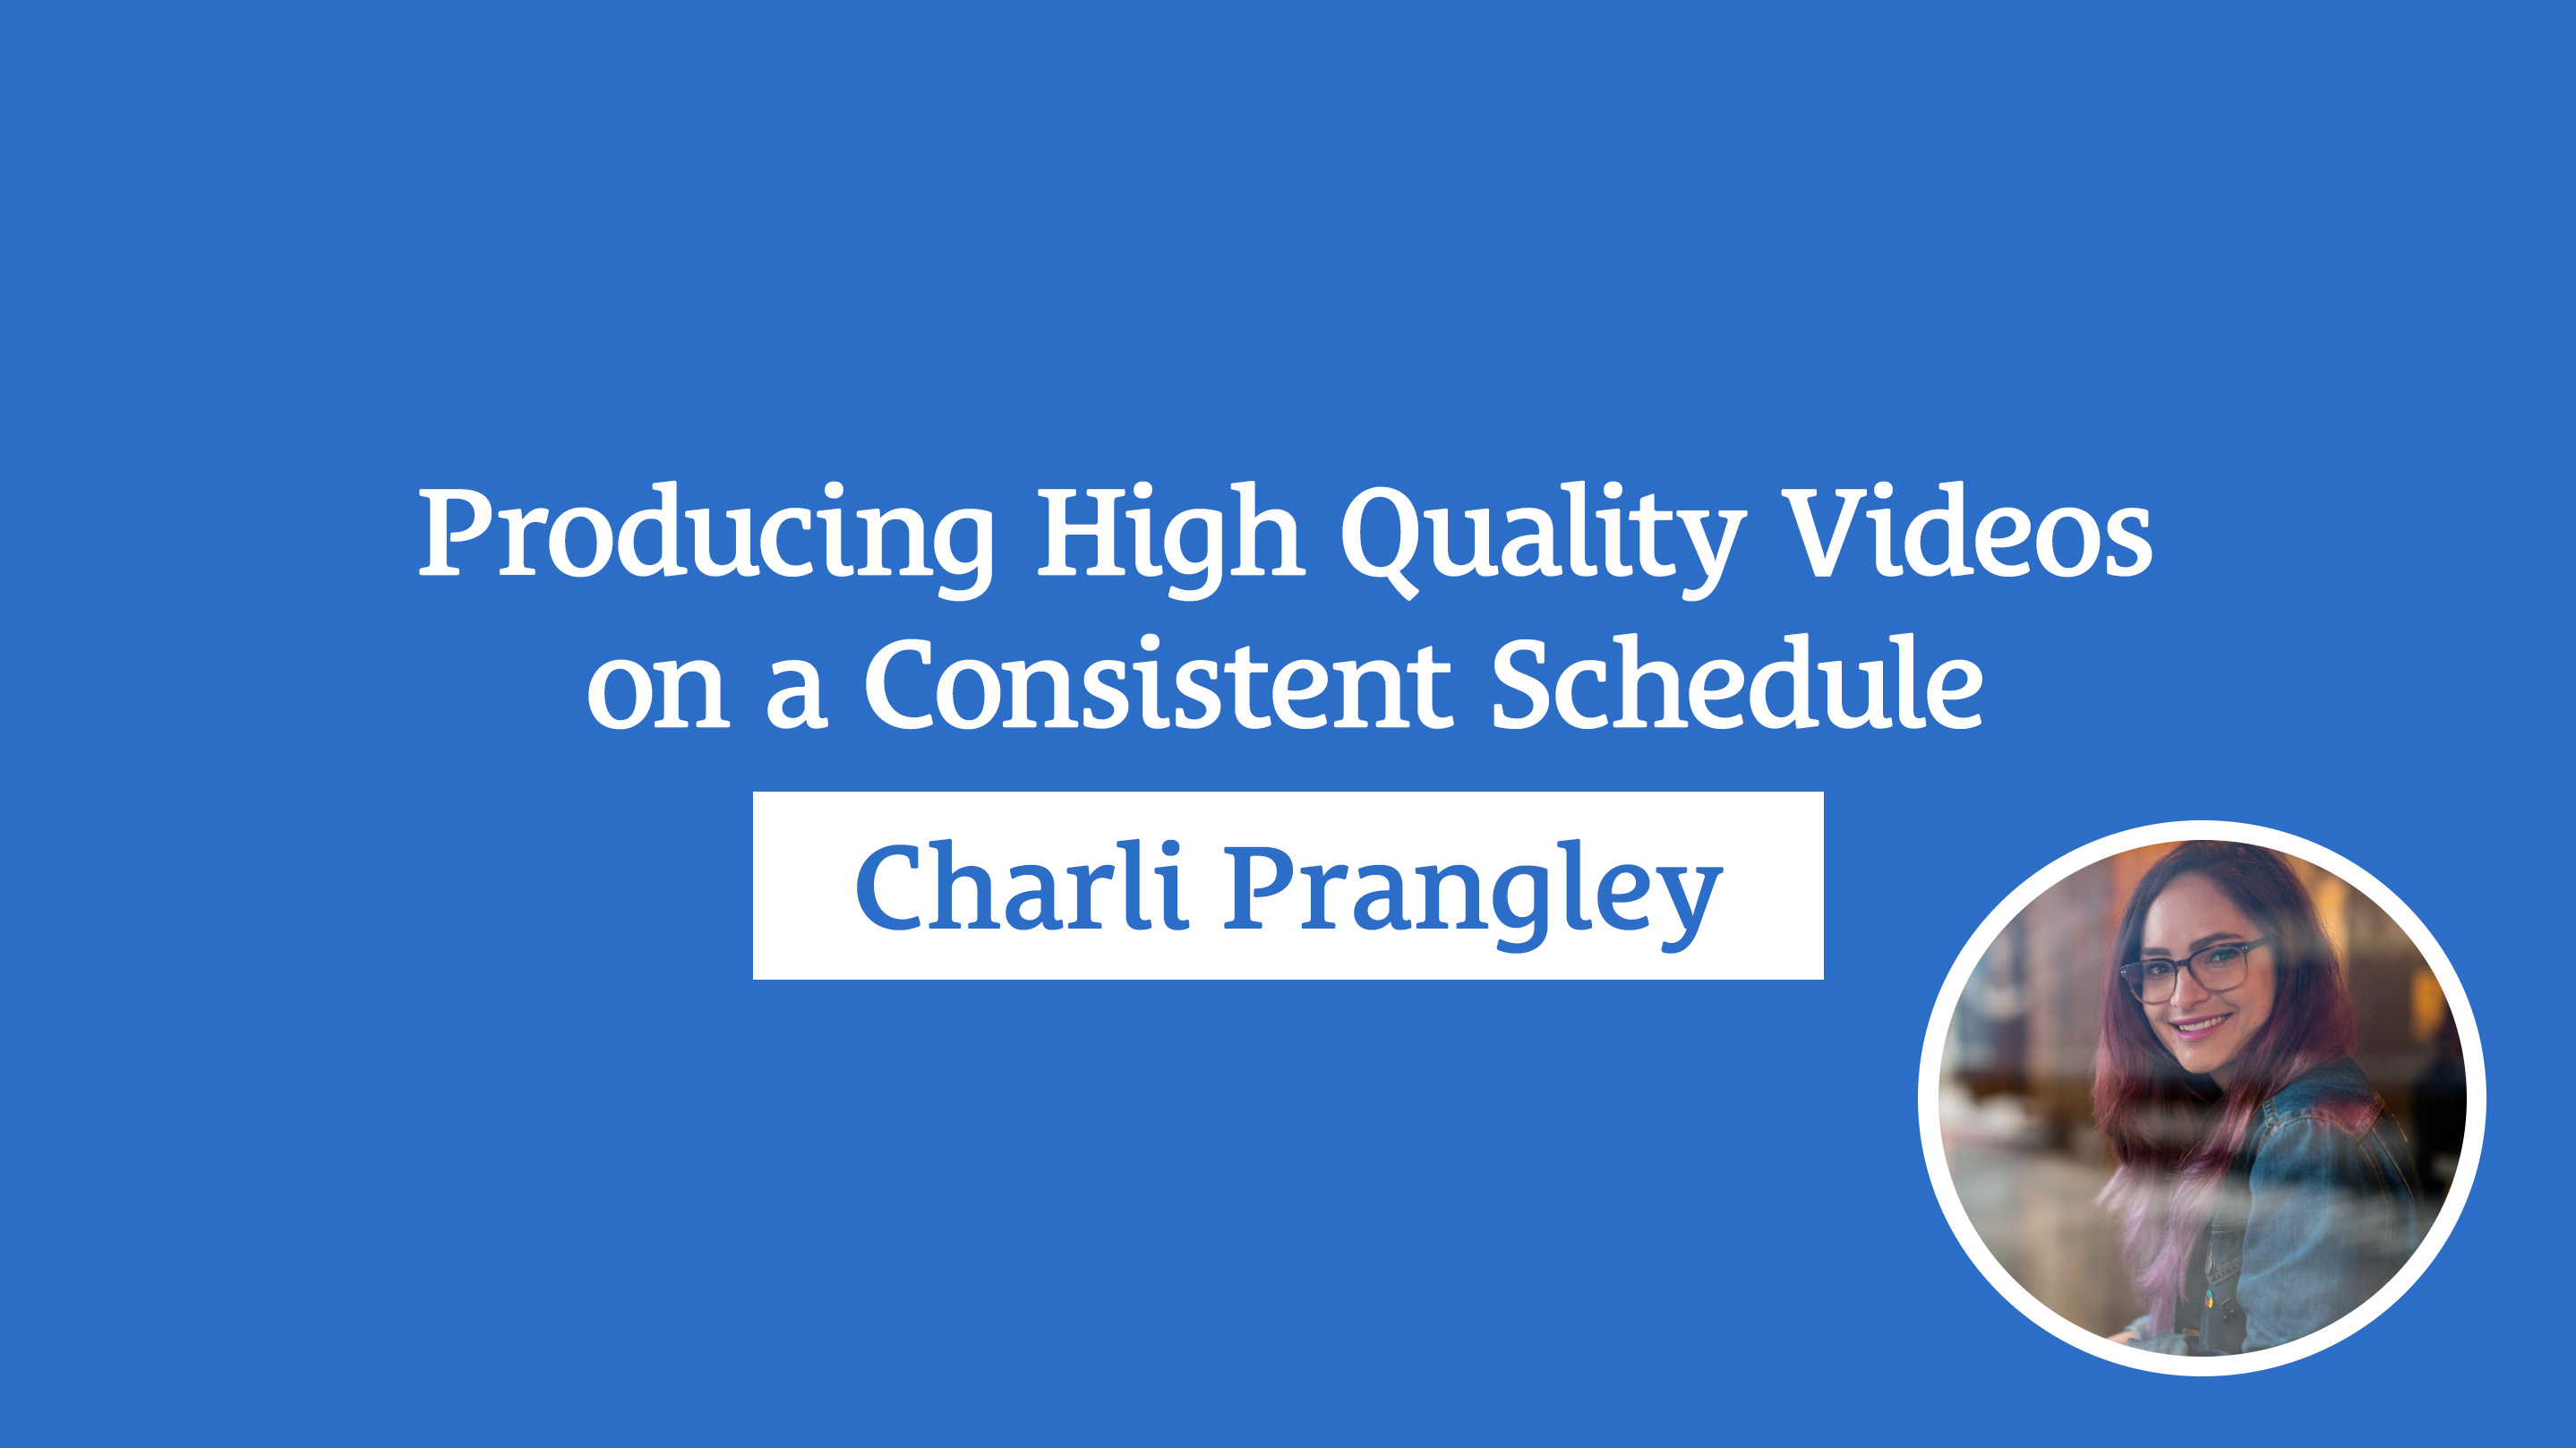 Producing High Quality Videos on a Consistent Schedule